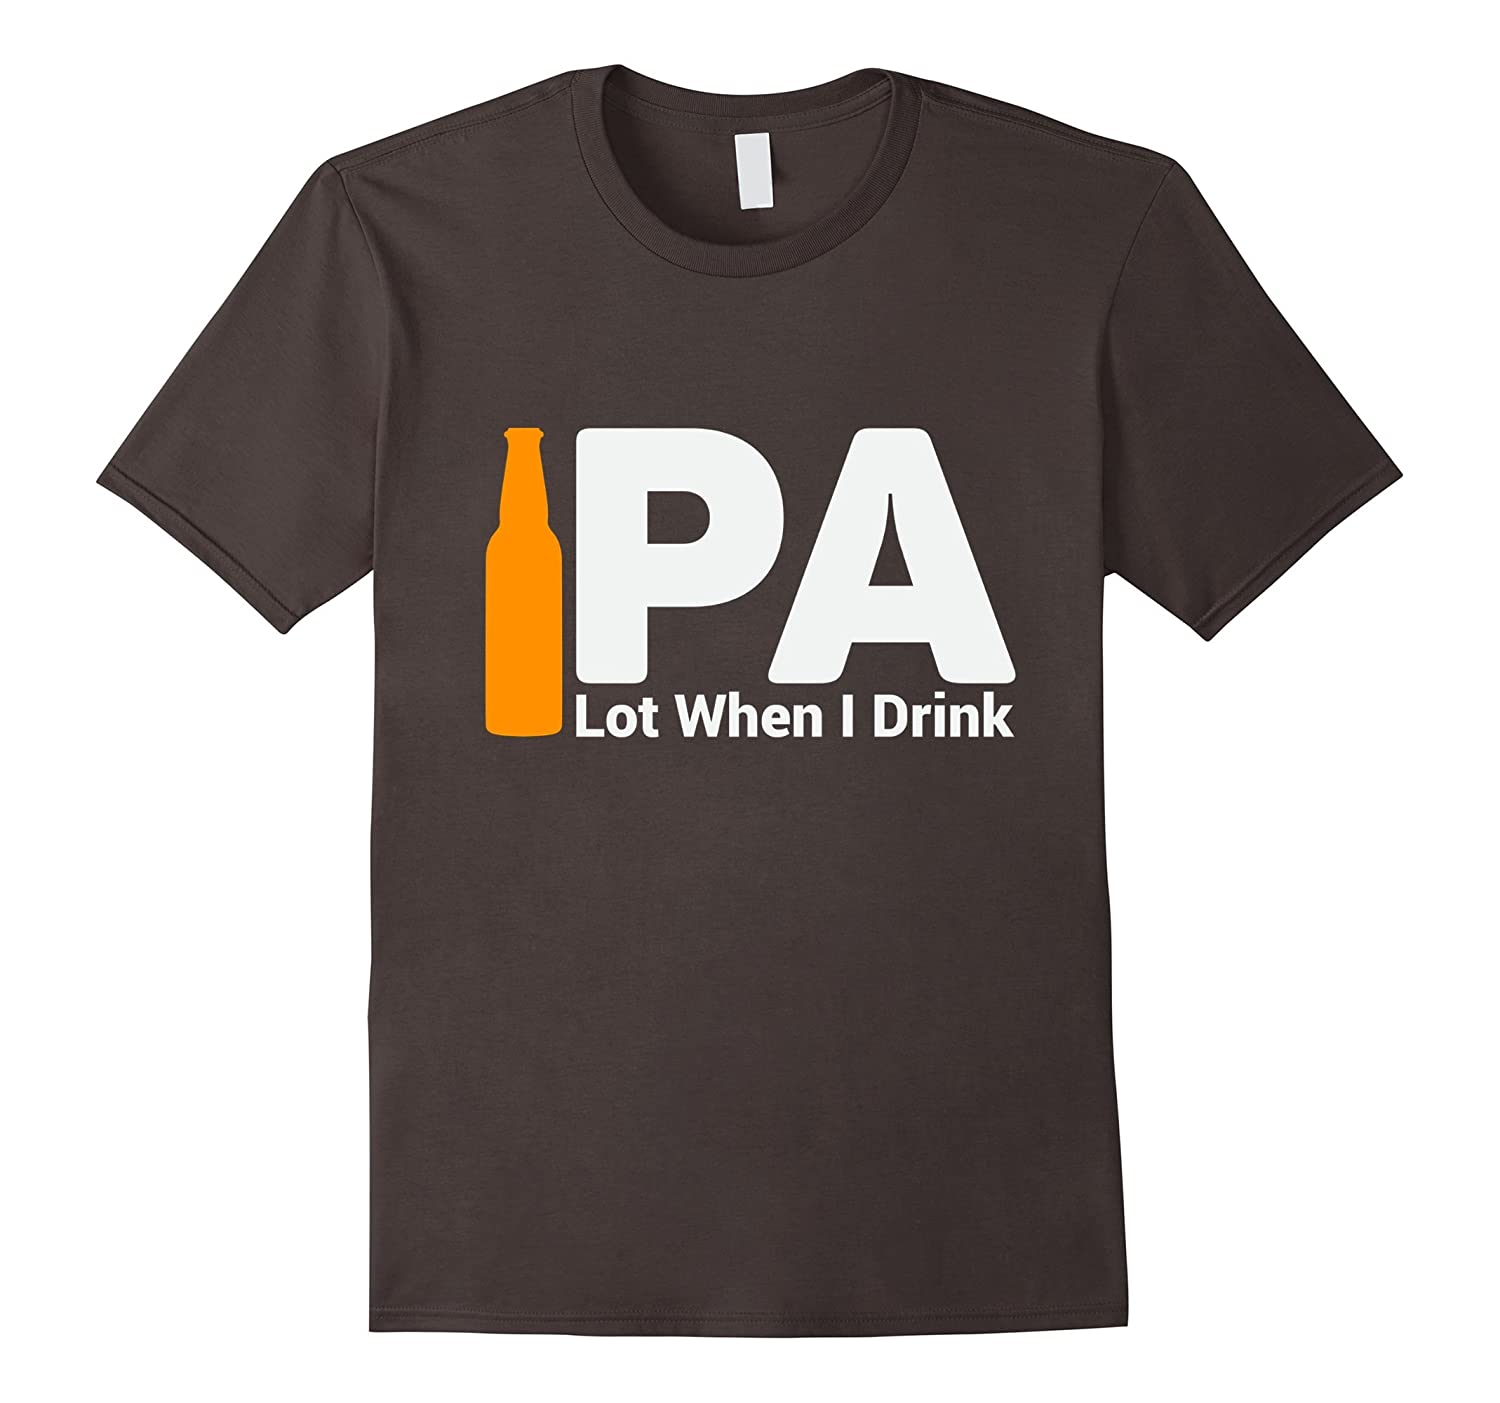 IPA Lot When I Drink  Funny Craft Beer Shirt Brewing Brew-Vaci